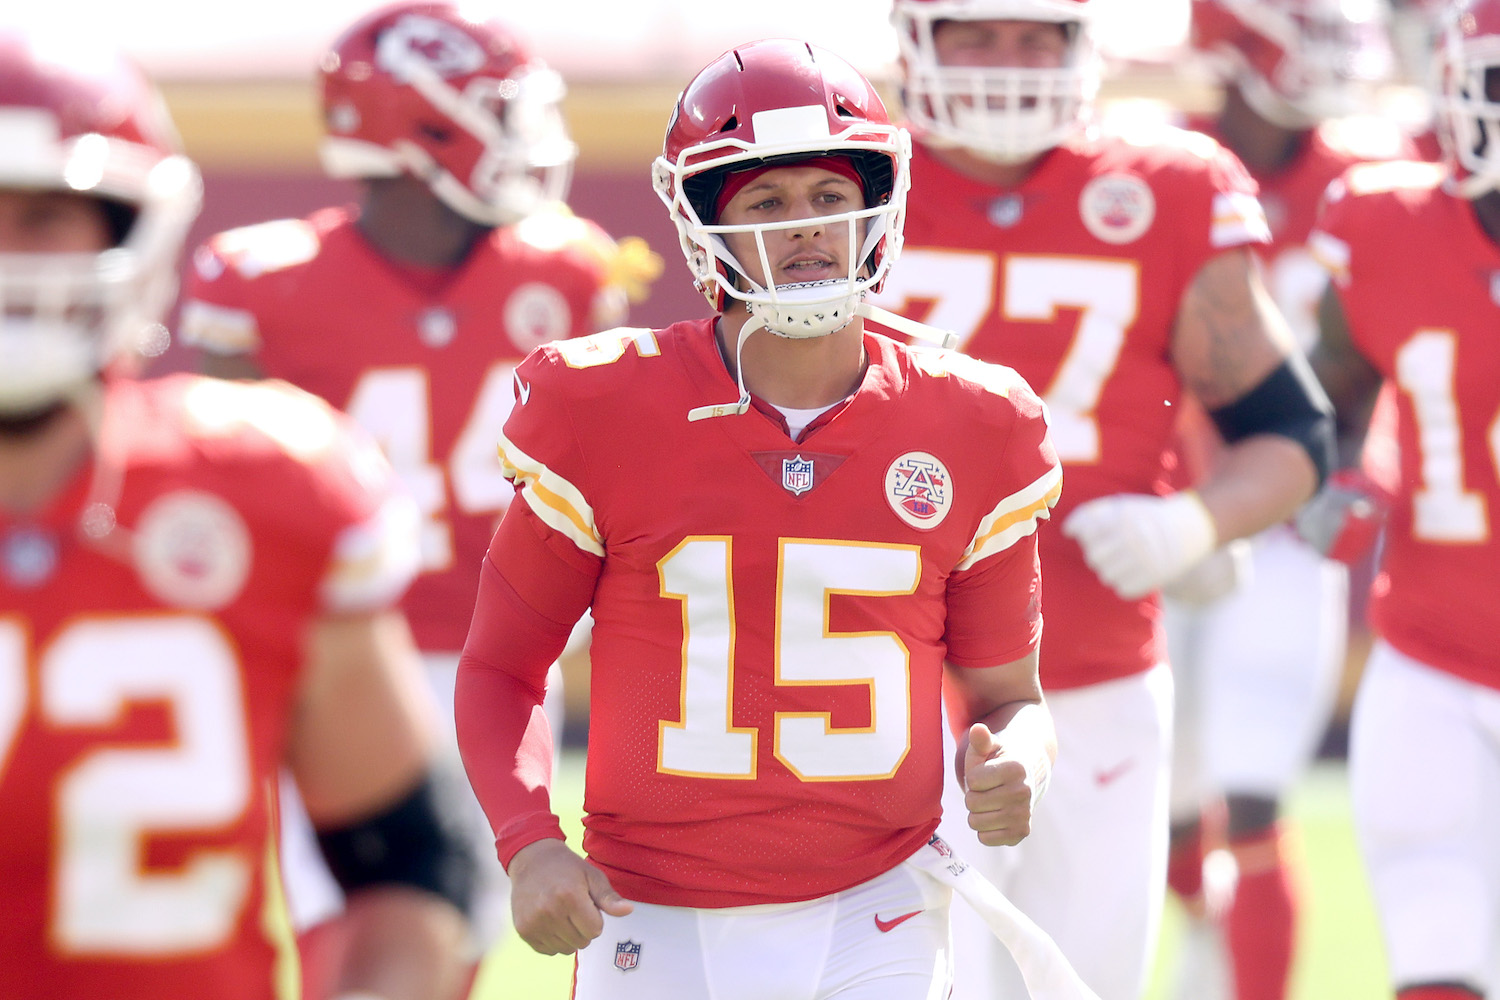 Super Bowls and $500 Million Aren't the Only Reasons Patrick Mahomes Signed With the Chiefs